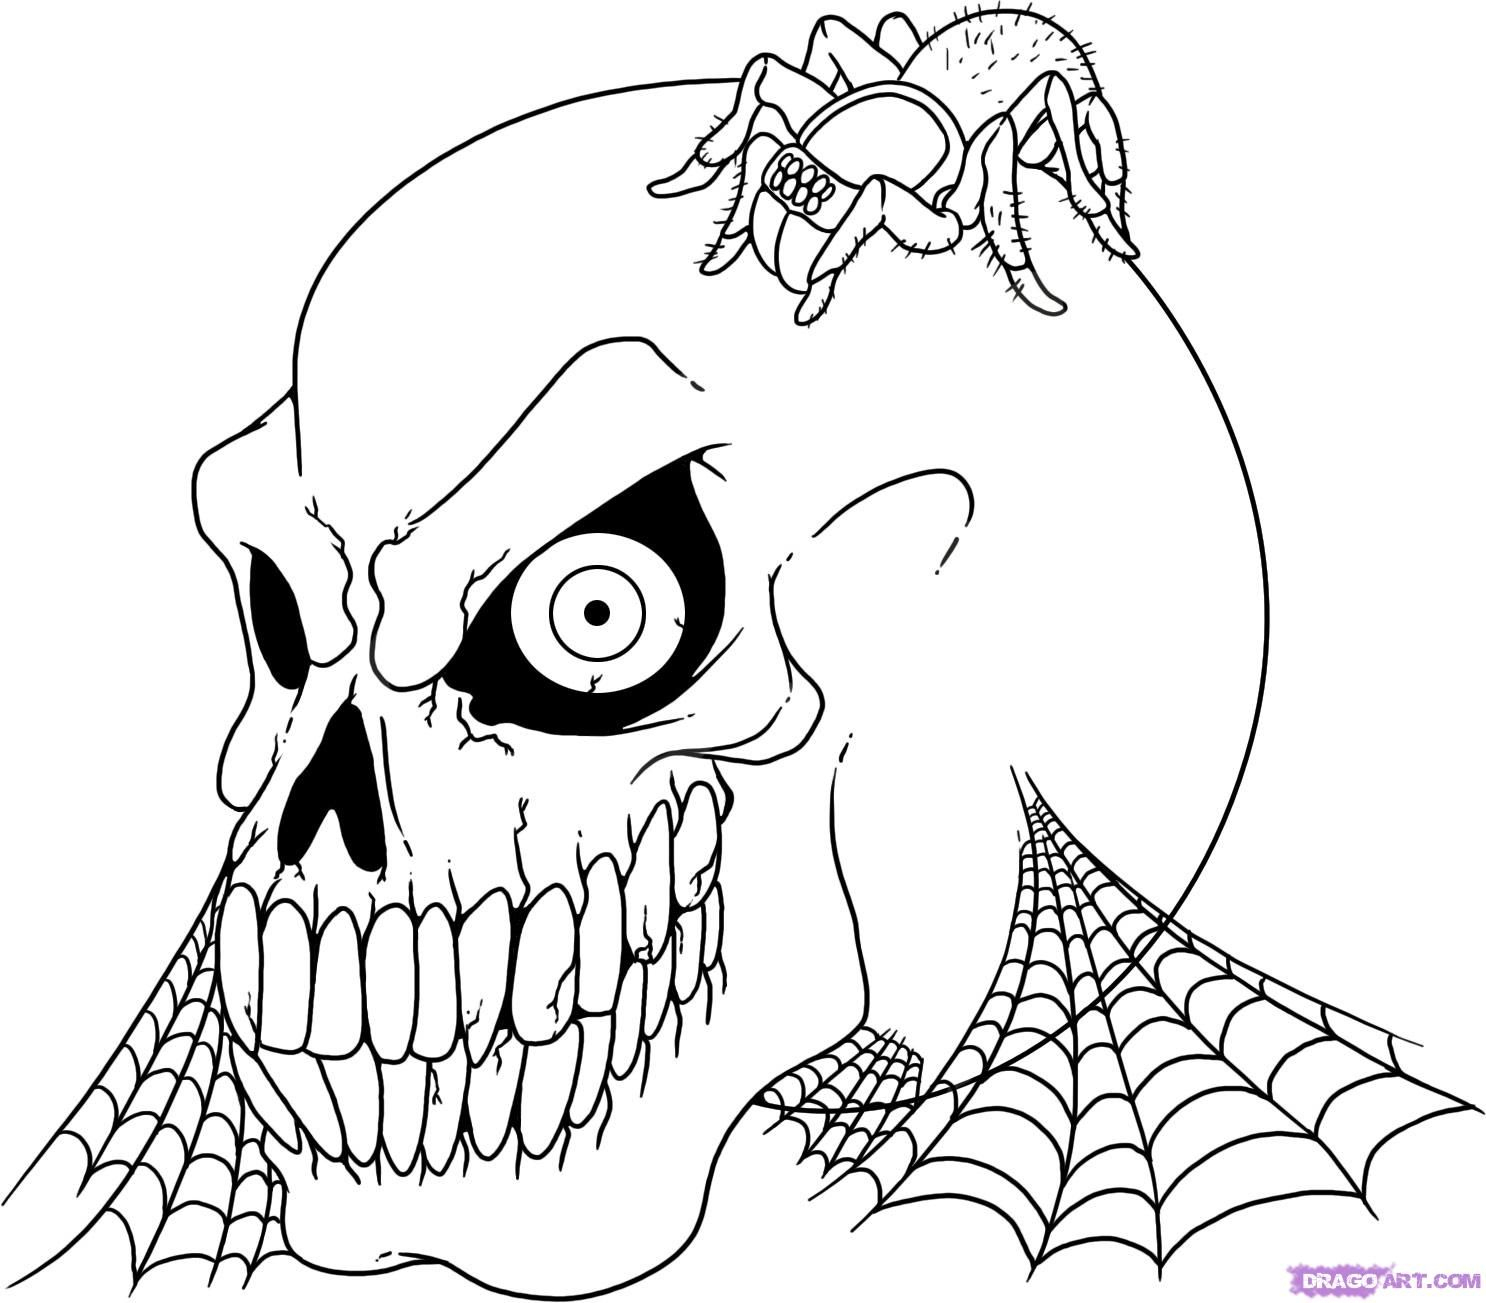 Adult Vampire Coloring Pages | Halloween Coloring Pages: Halloween - Free Printable Skeleton Coloring Pages